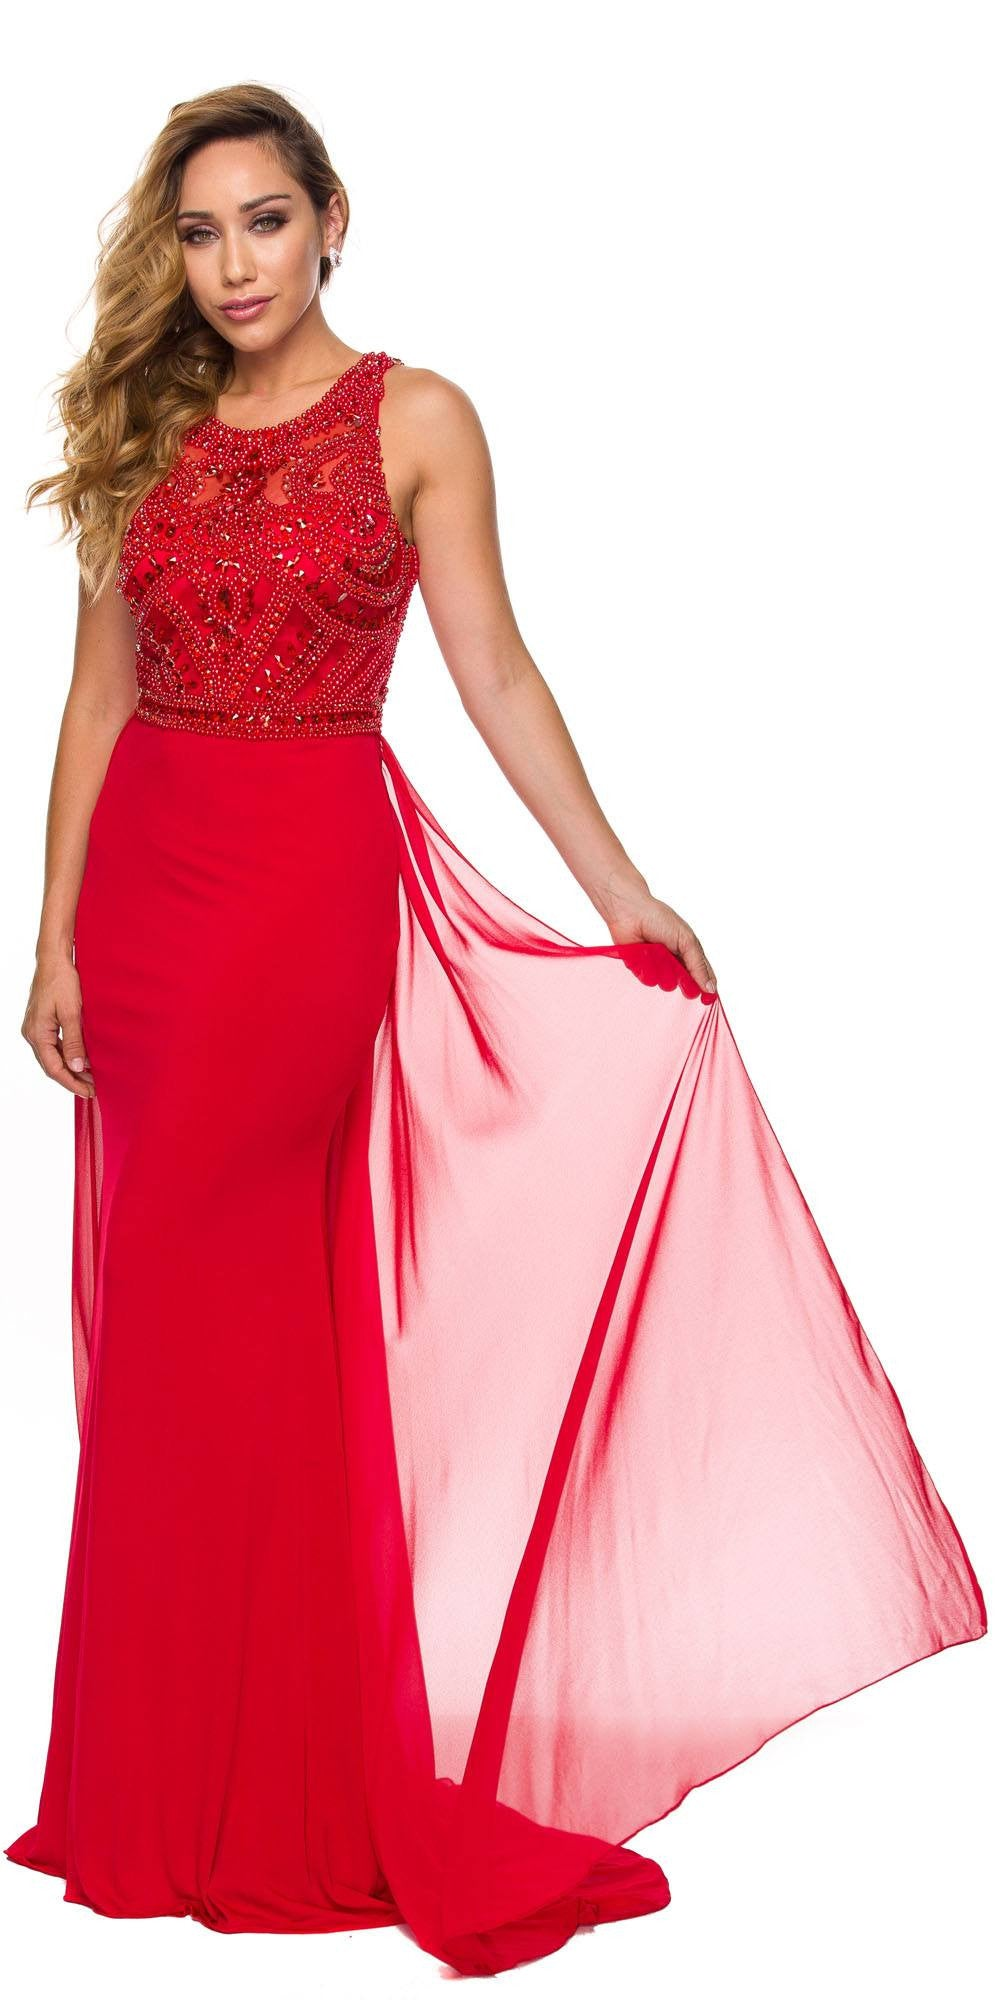 Juliet 628 Embellished Bodice Fit and Flare Prom Gown with Train Red ...